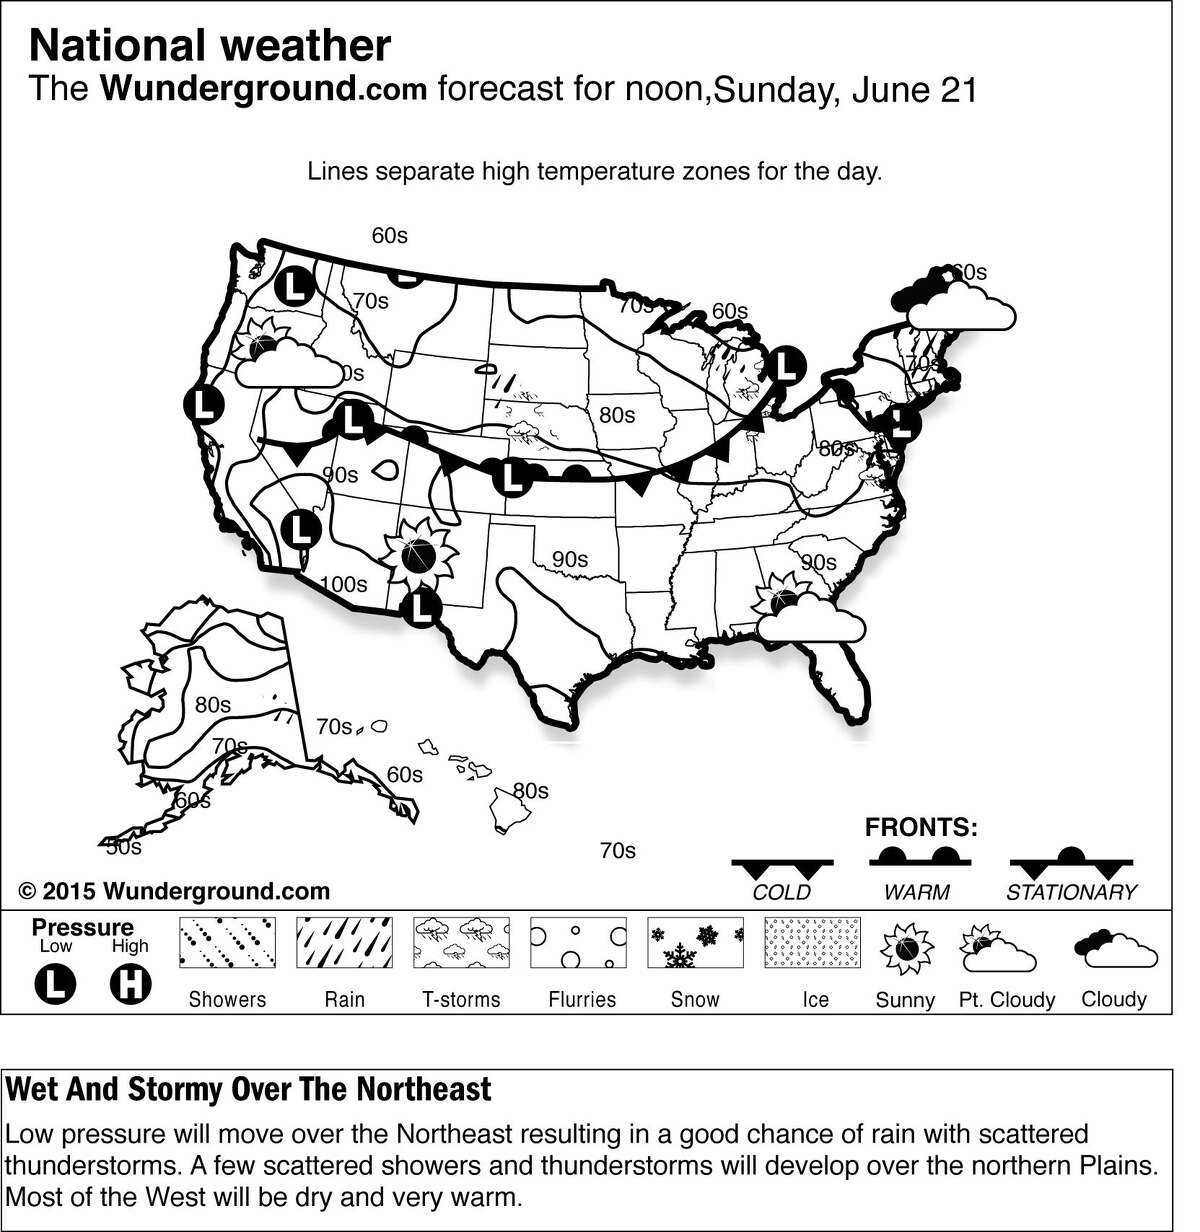 This is a Weather Underground forecast for Sunday, June 21, 2015, for the U.S. Low pressure will move over the Northeast resulting in a good chance of rain with scattered thunderstorms.